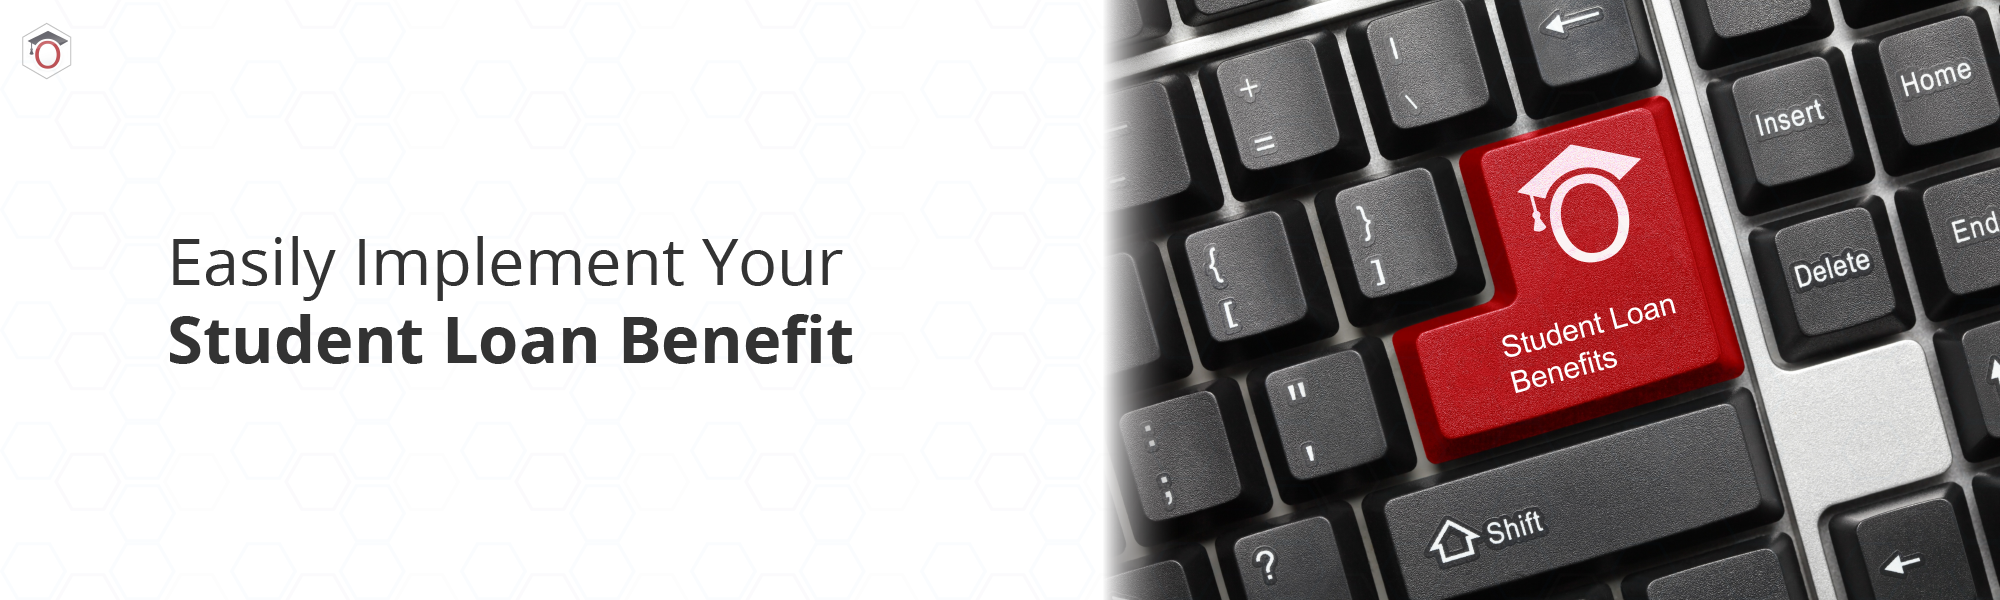 How to Implement a Student Loan Benefit